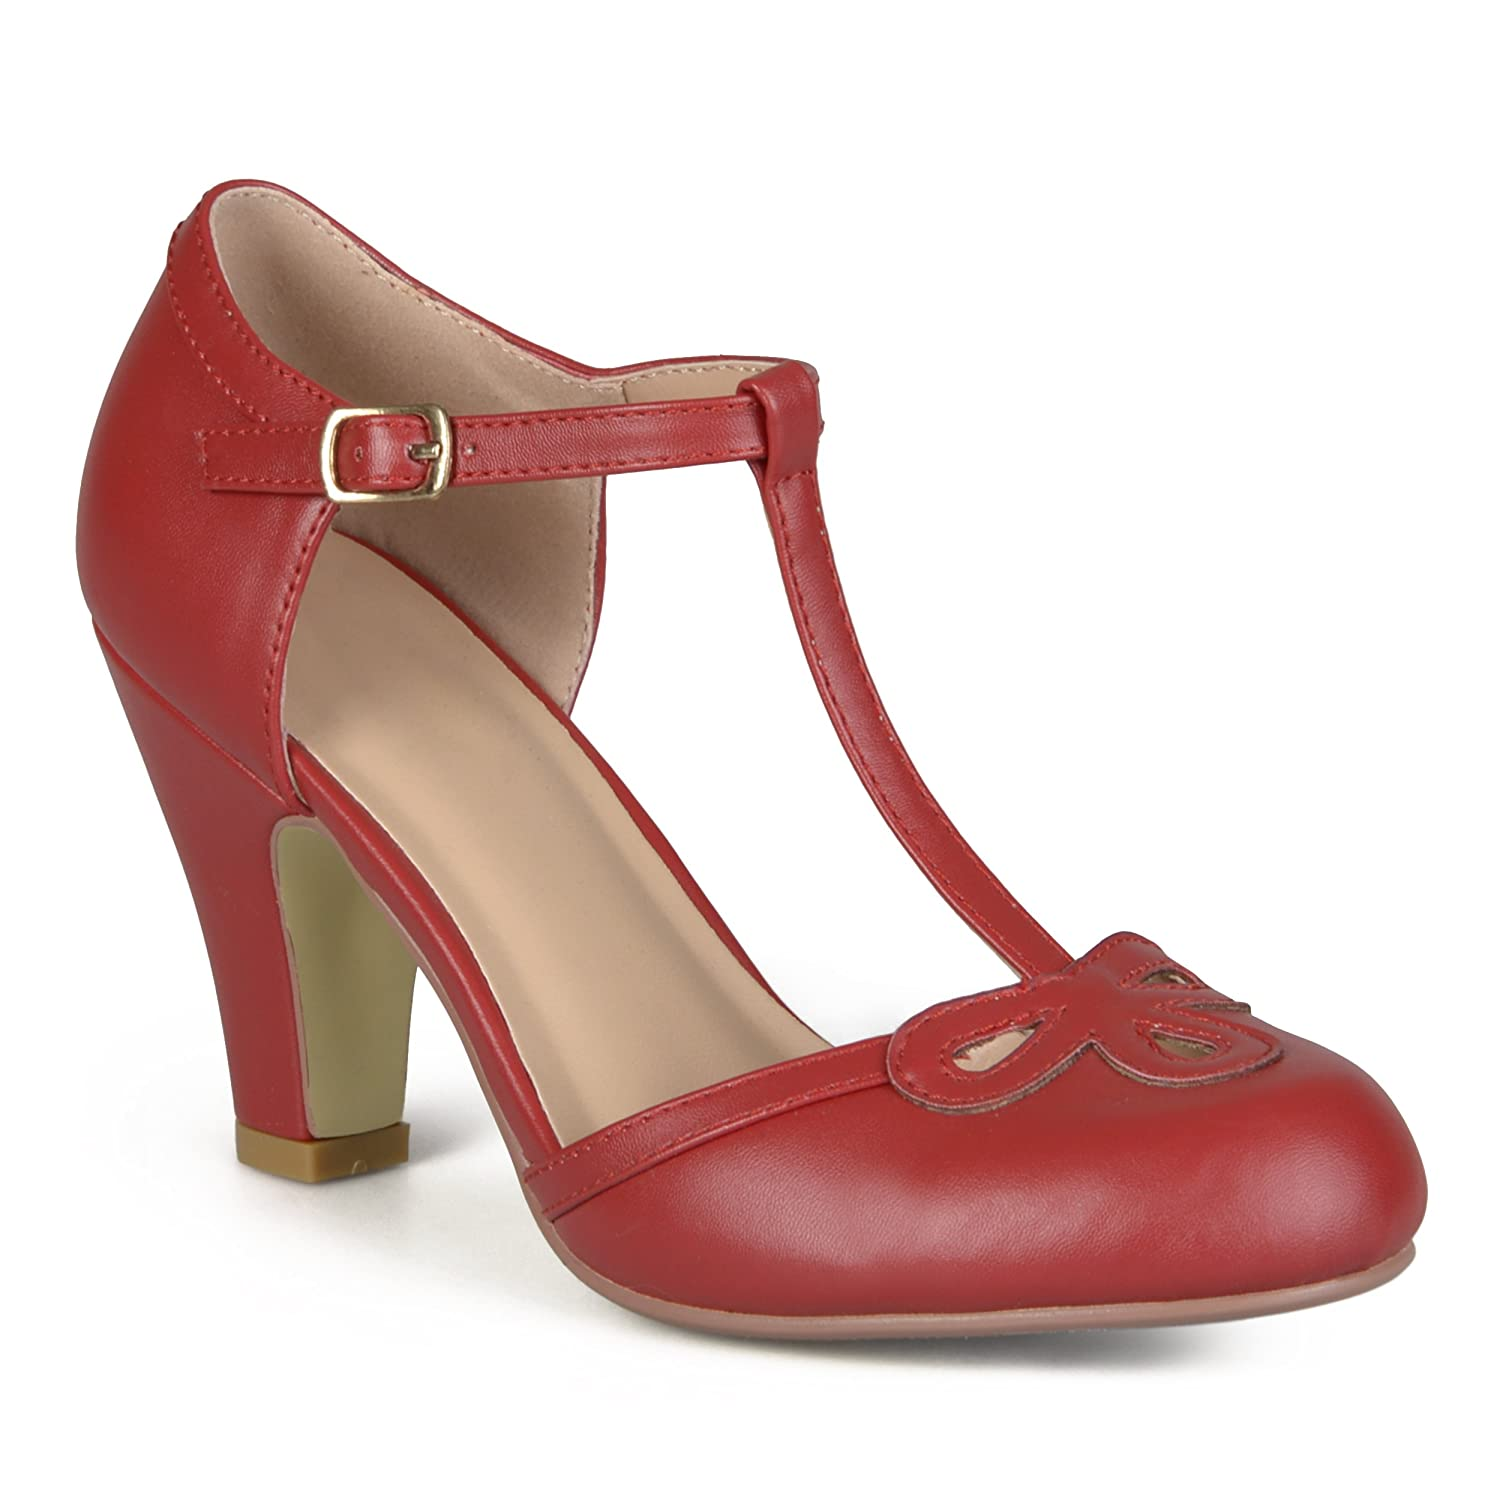 Vintage Style Shoes, Vintage Inspired Shoes Brinley Co Womens Patsie Pump $39.99 AT vintagedancer.com